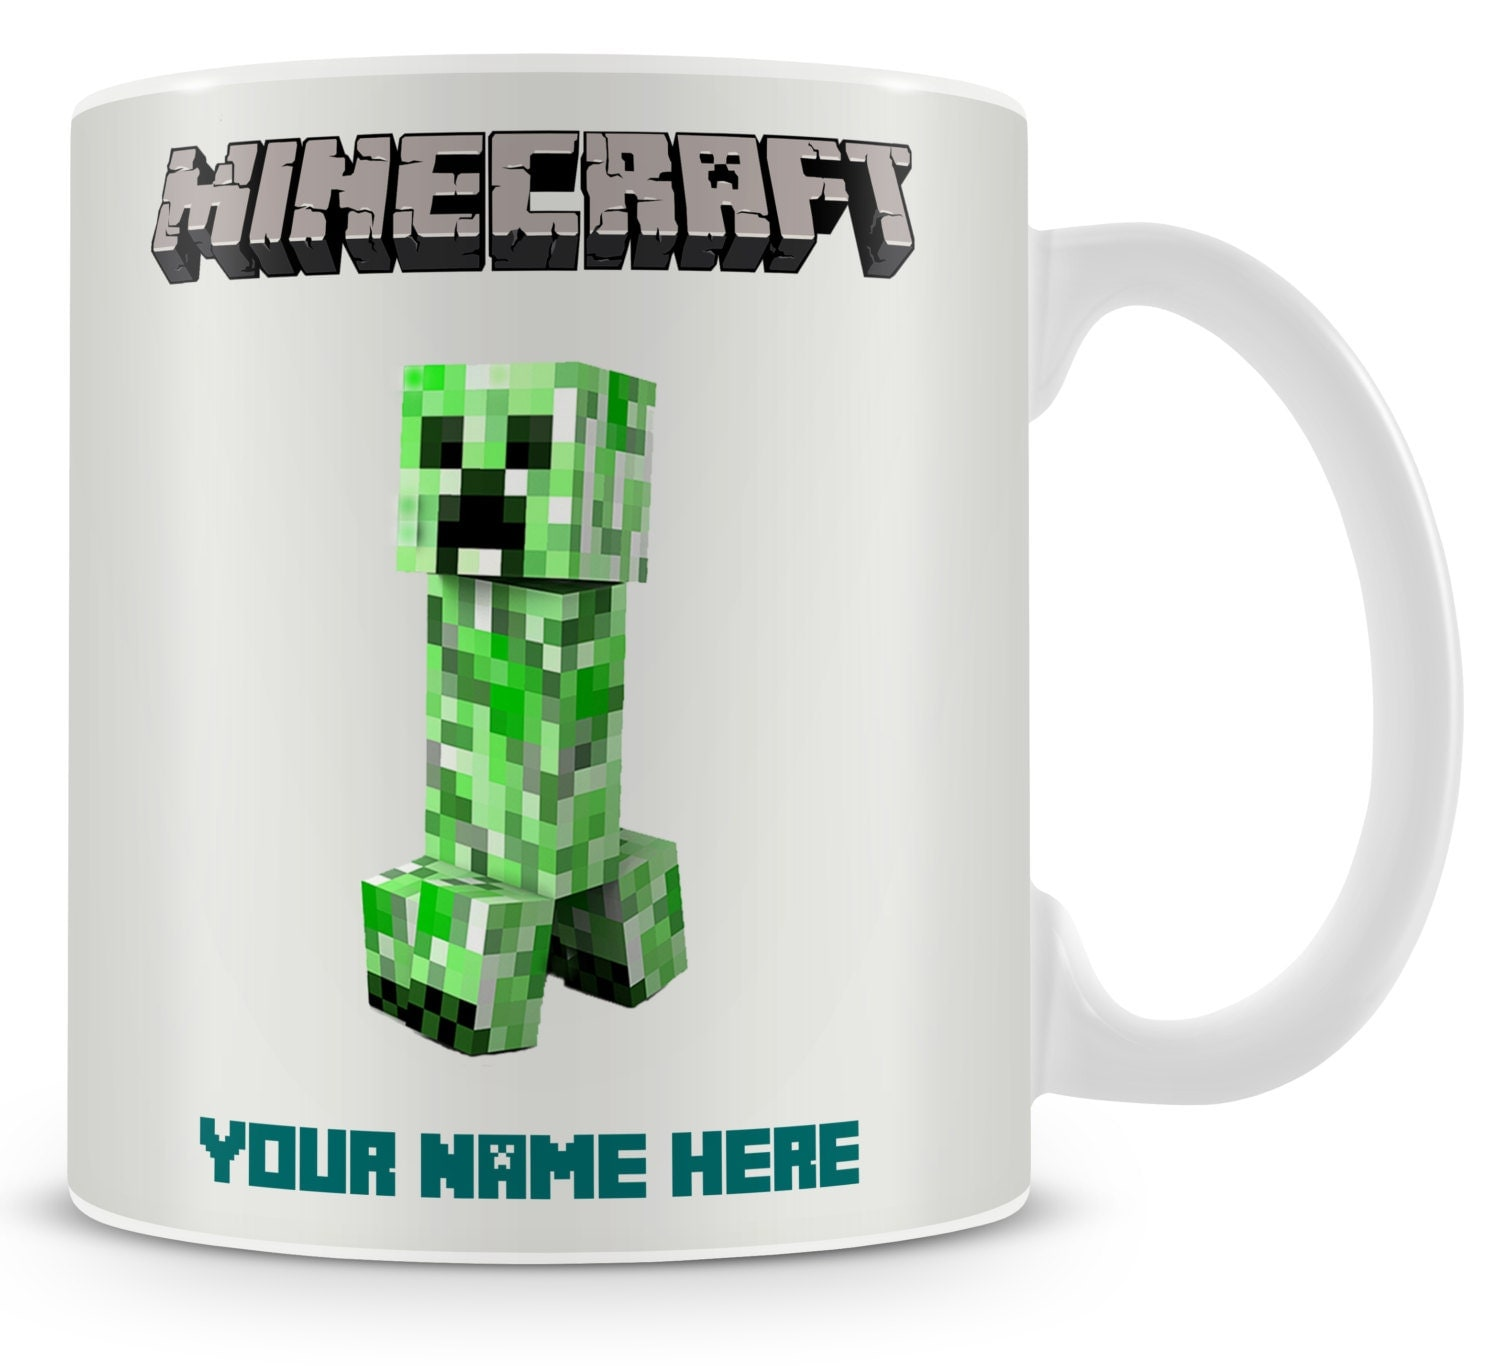 how to make a cup of tea in minecraft